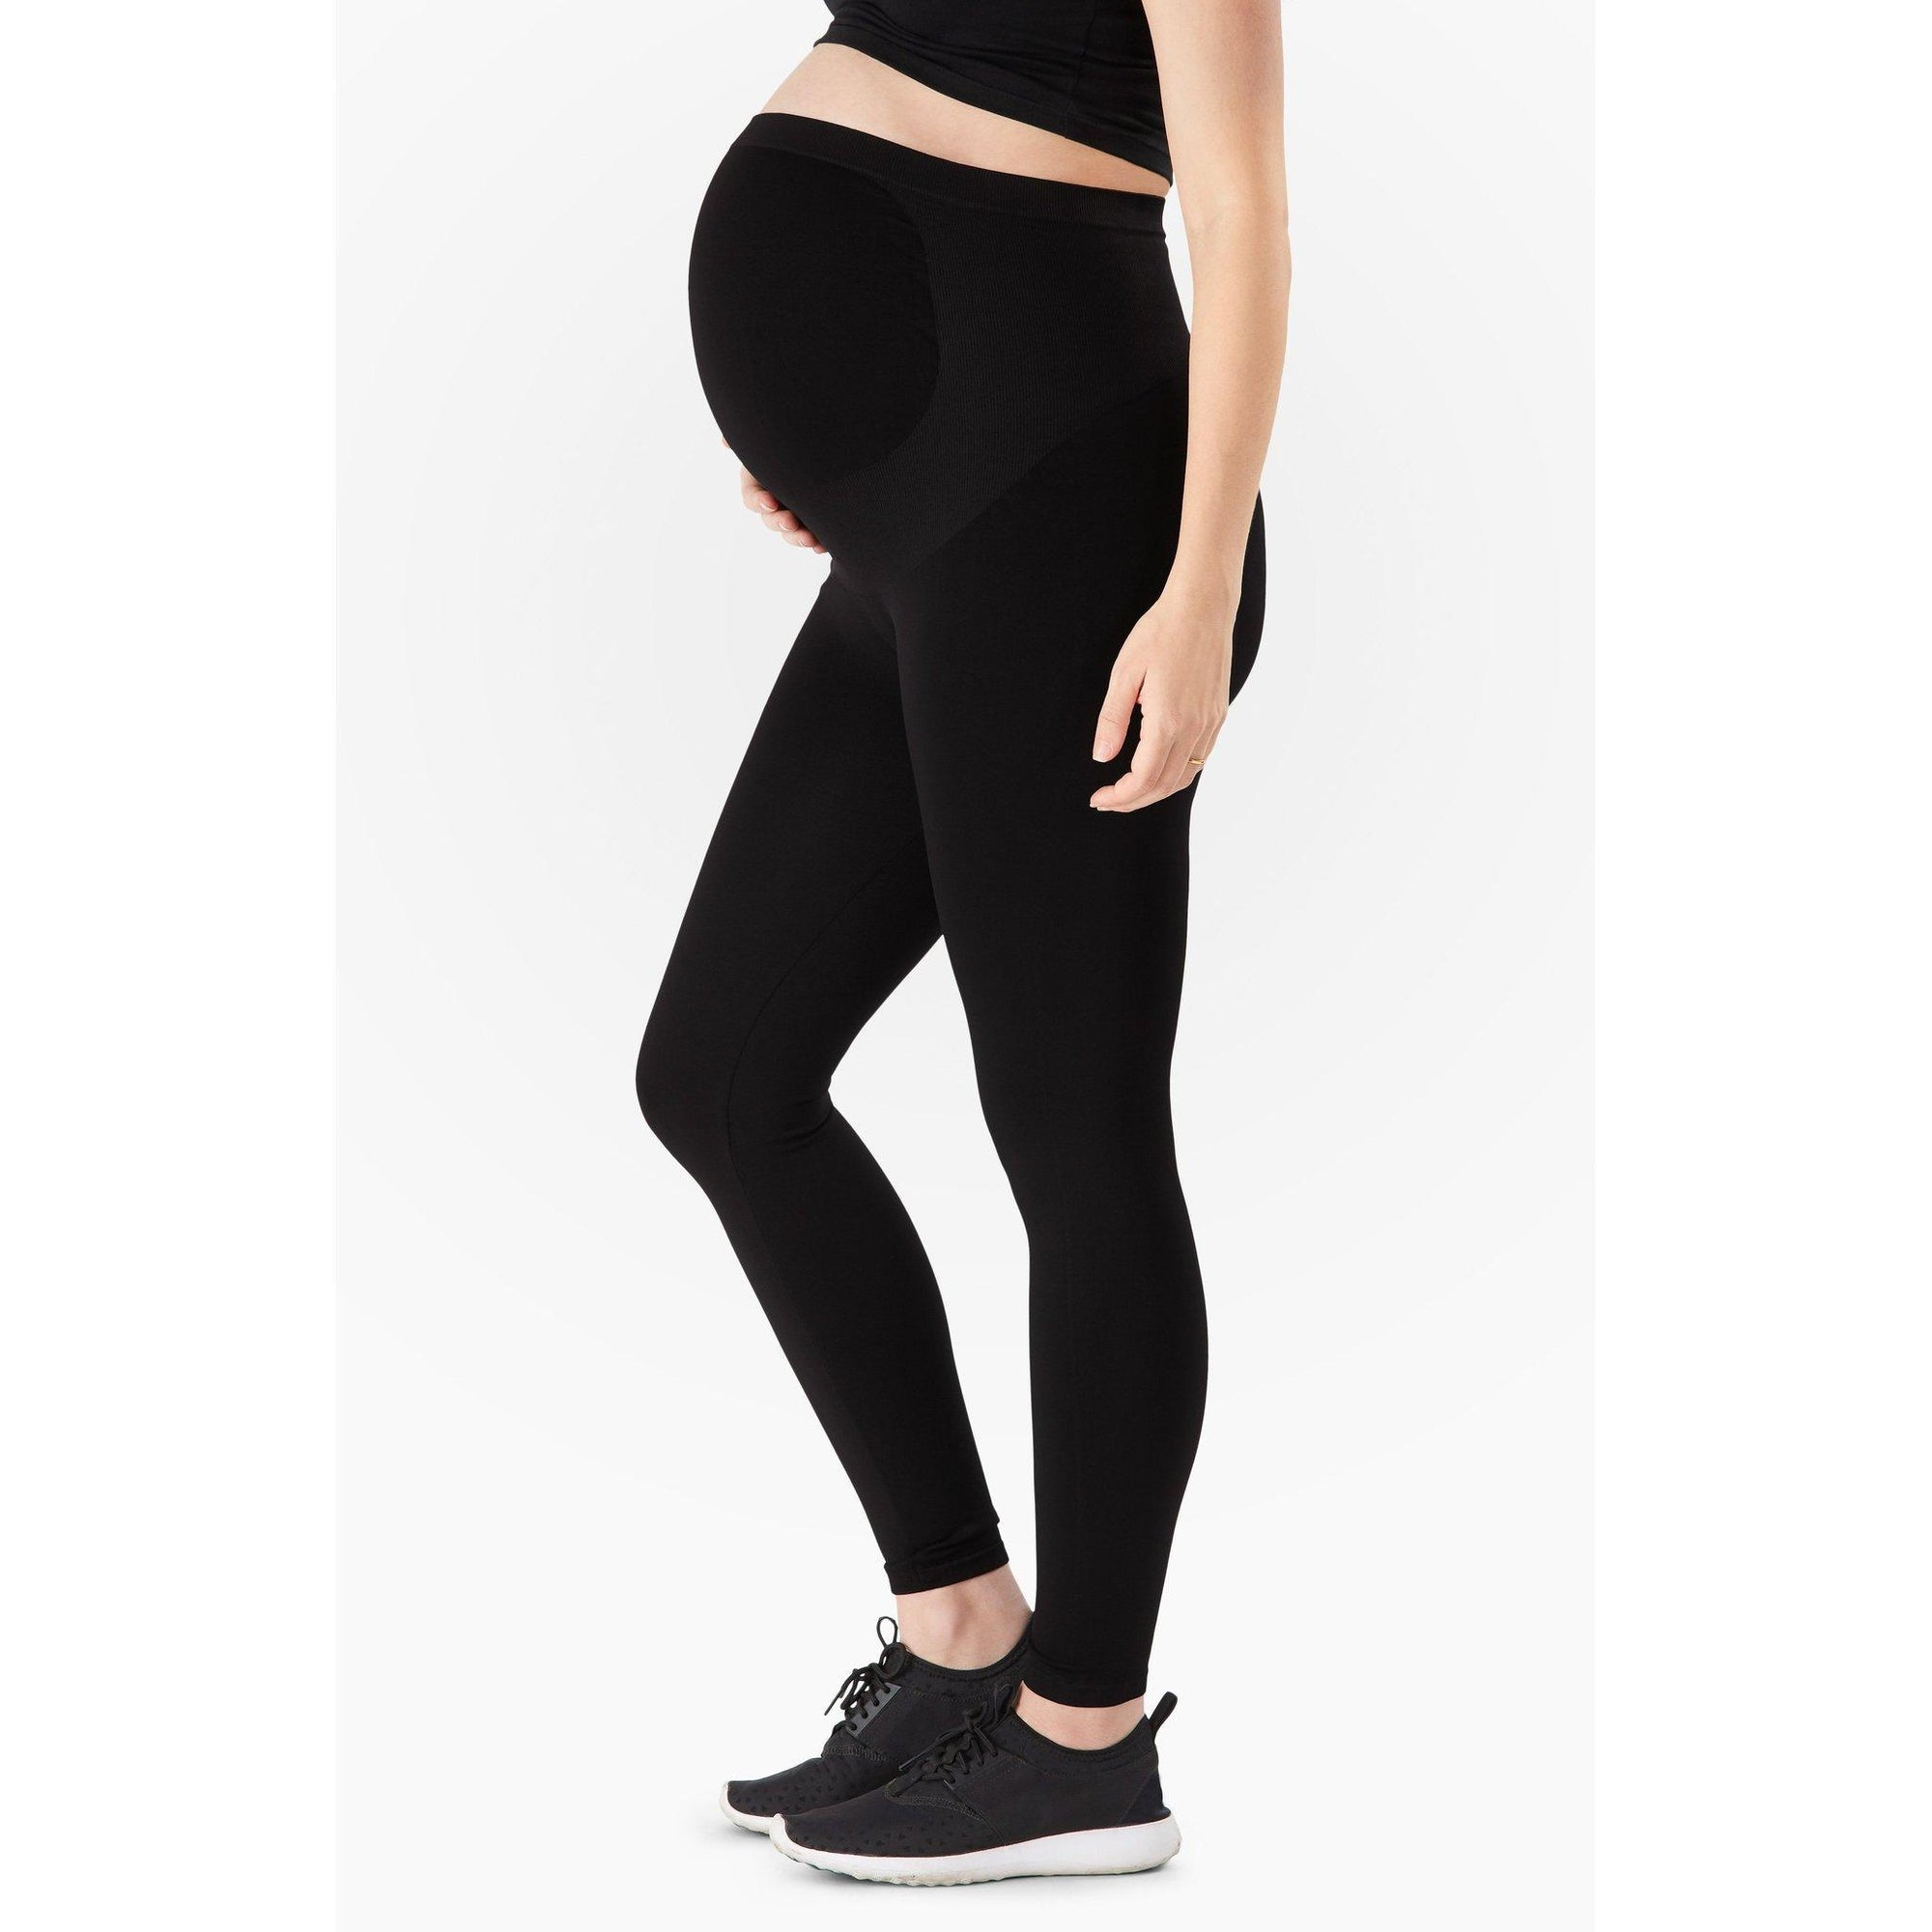 Belly Bandit® Bump Support Leggings - Medium